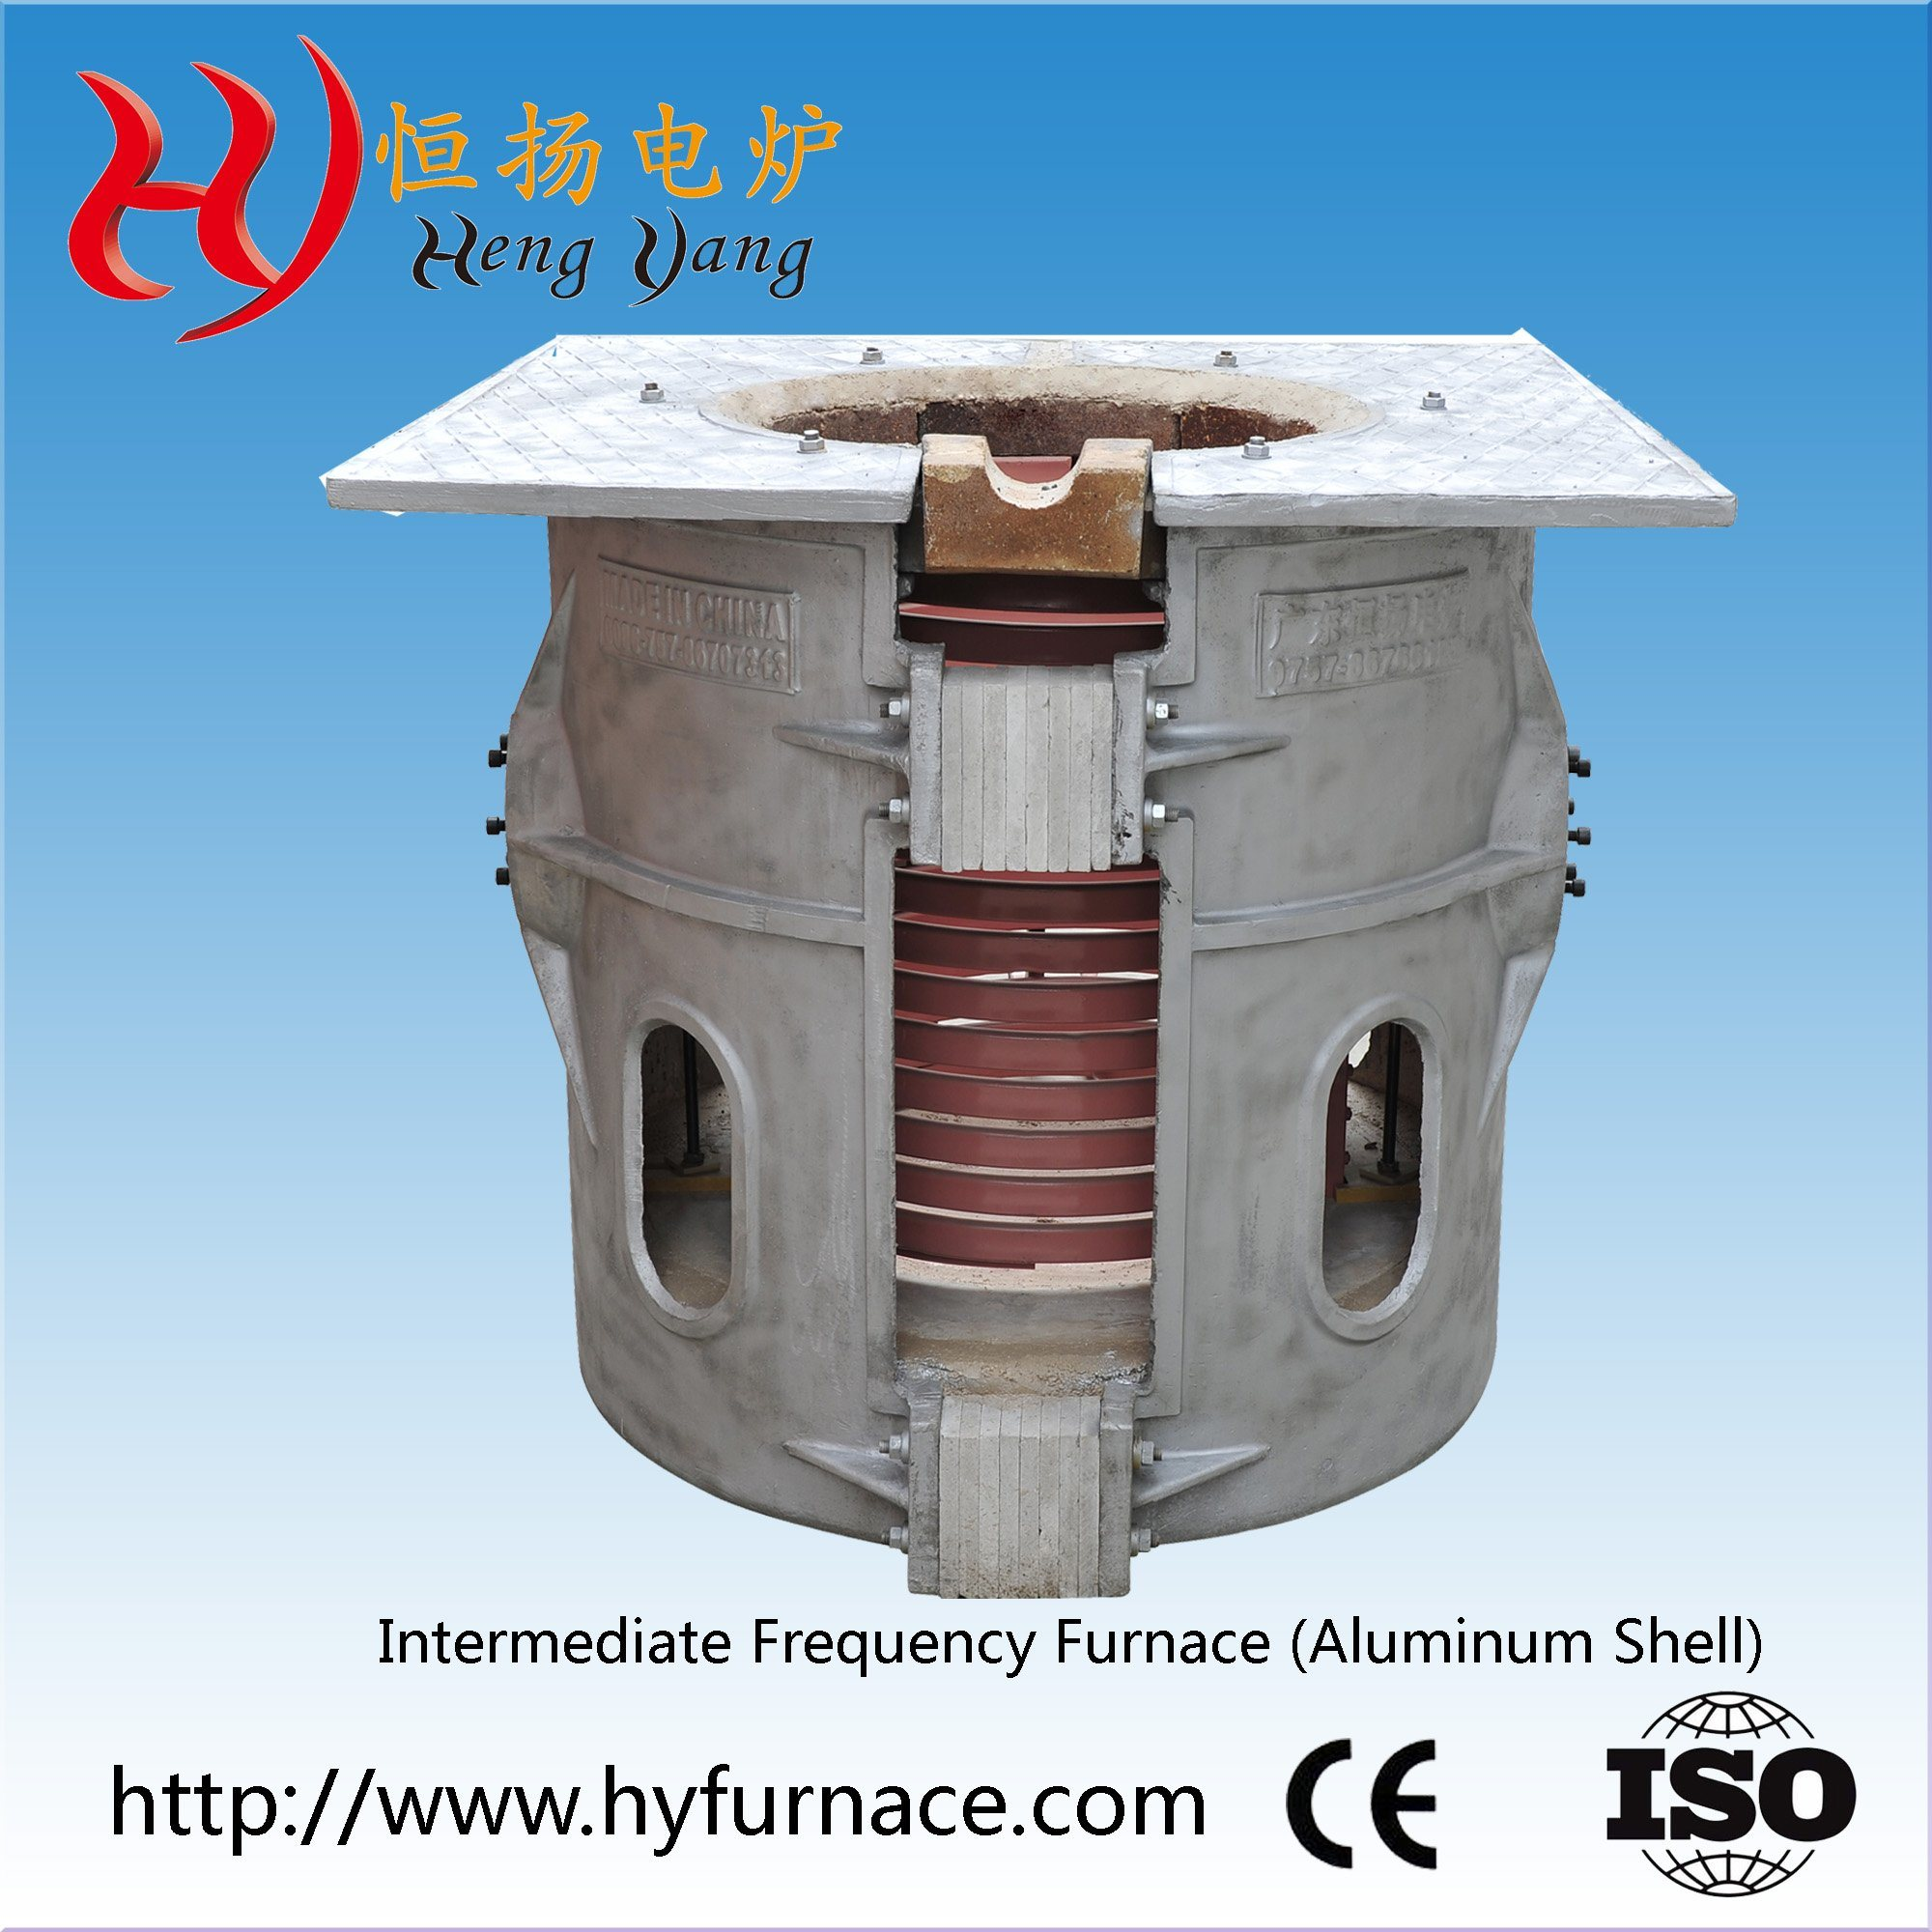 If Melting Furnace/Equipment (GW-3000KG)